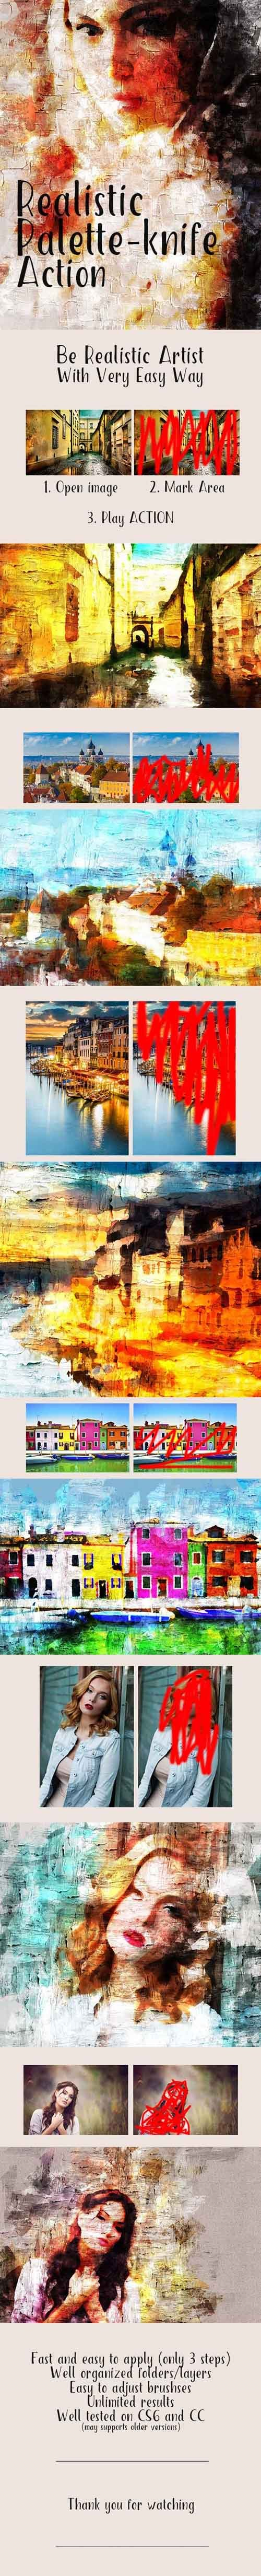 Graphicriver - Realistic Palette-Knife Painting Action 20214877